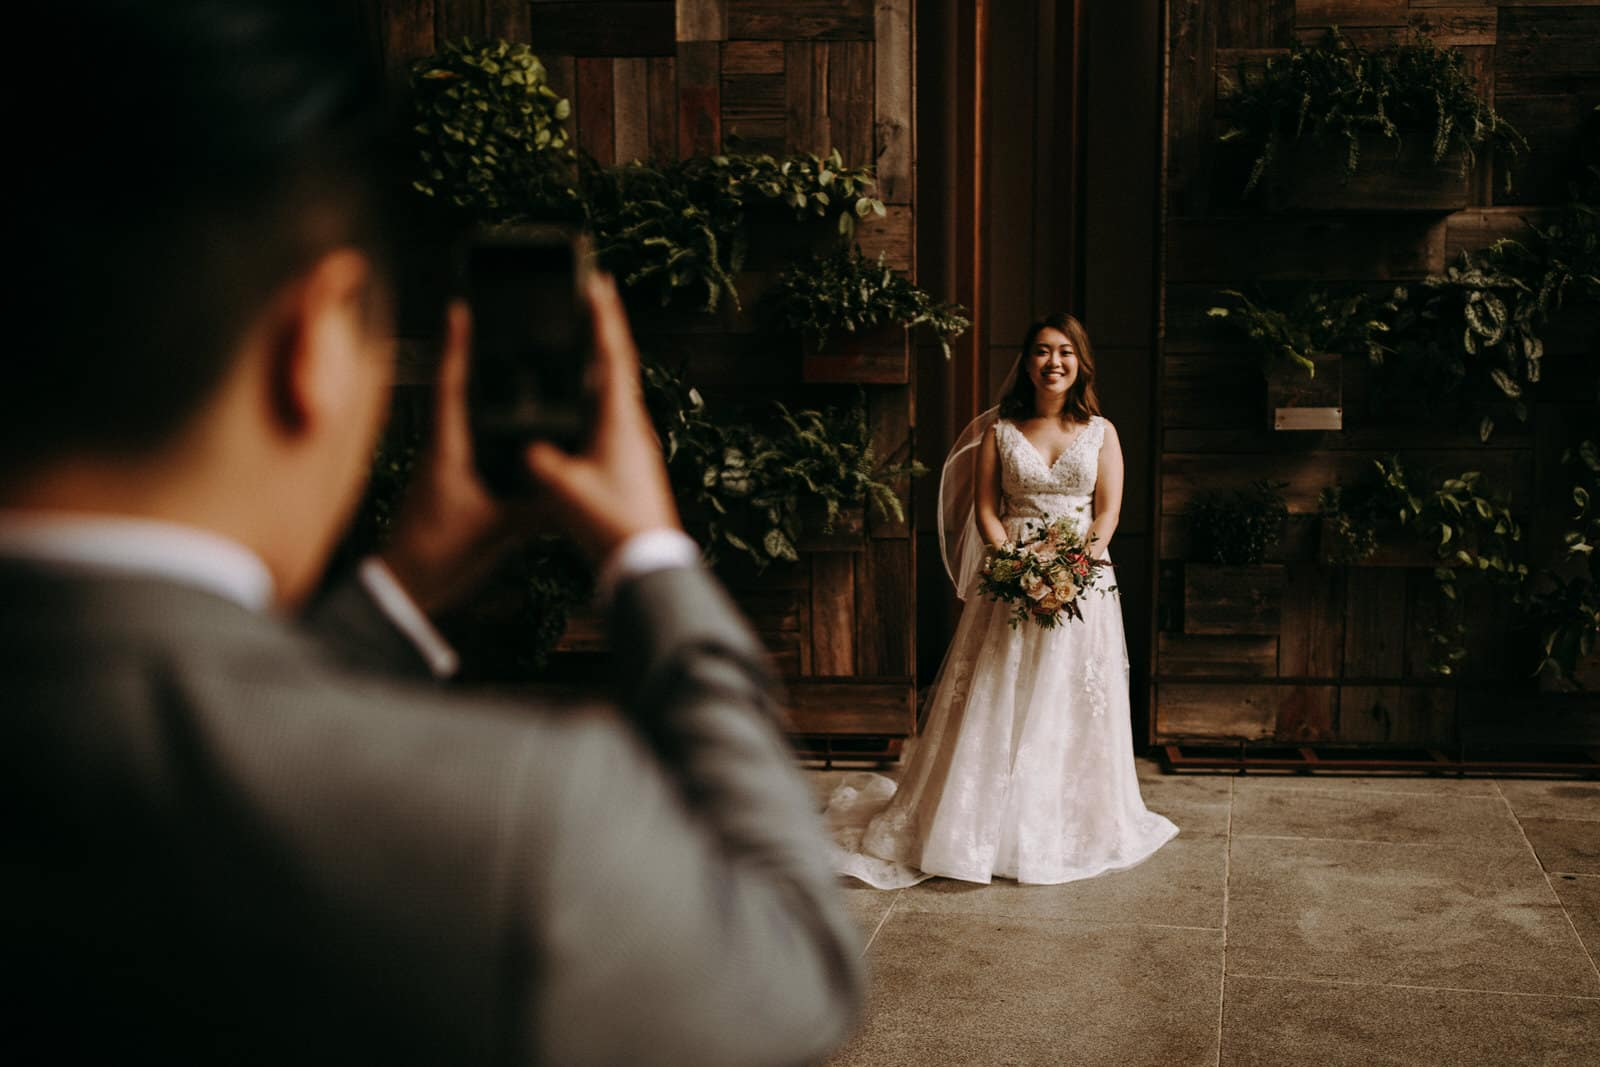 The groom is taking a picture of his bride.